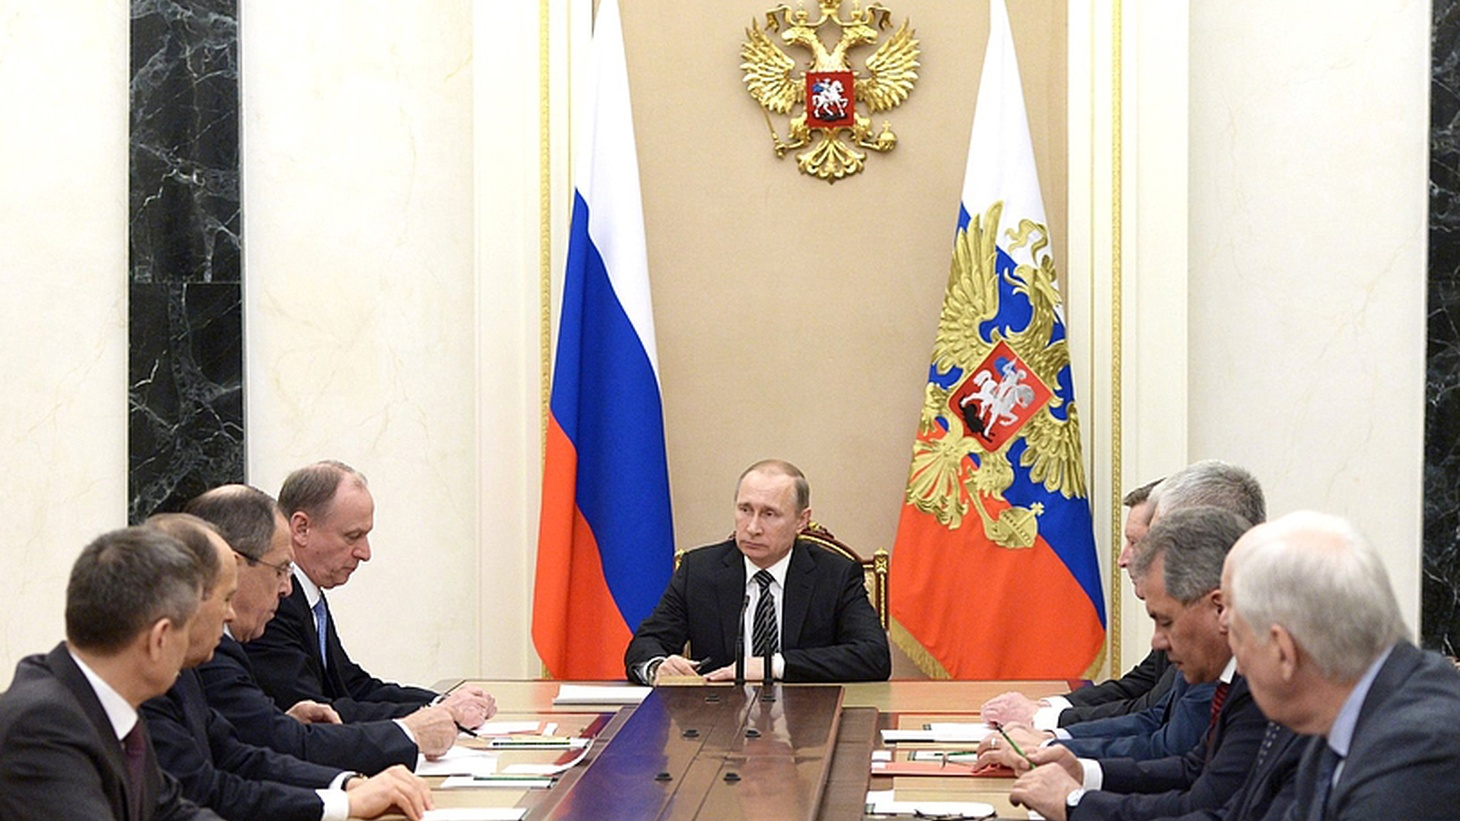 Vladimir Putin's surprise withdrawal of military forces from Syria appears to less than he promised. We hear what's happening — and not happening — on the ground and how Putin's intentions are being interpreted from Washington to Moscow.